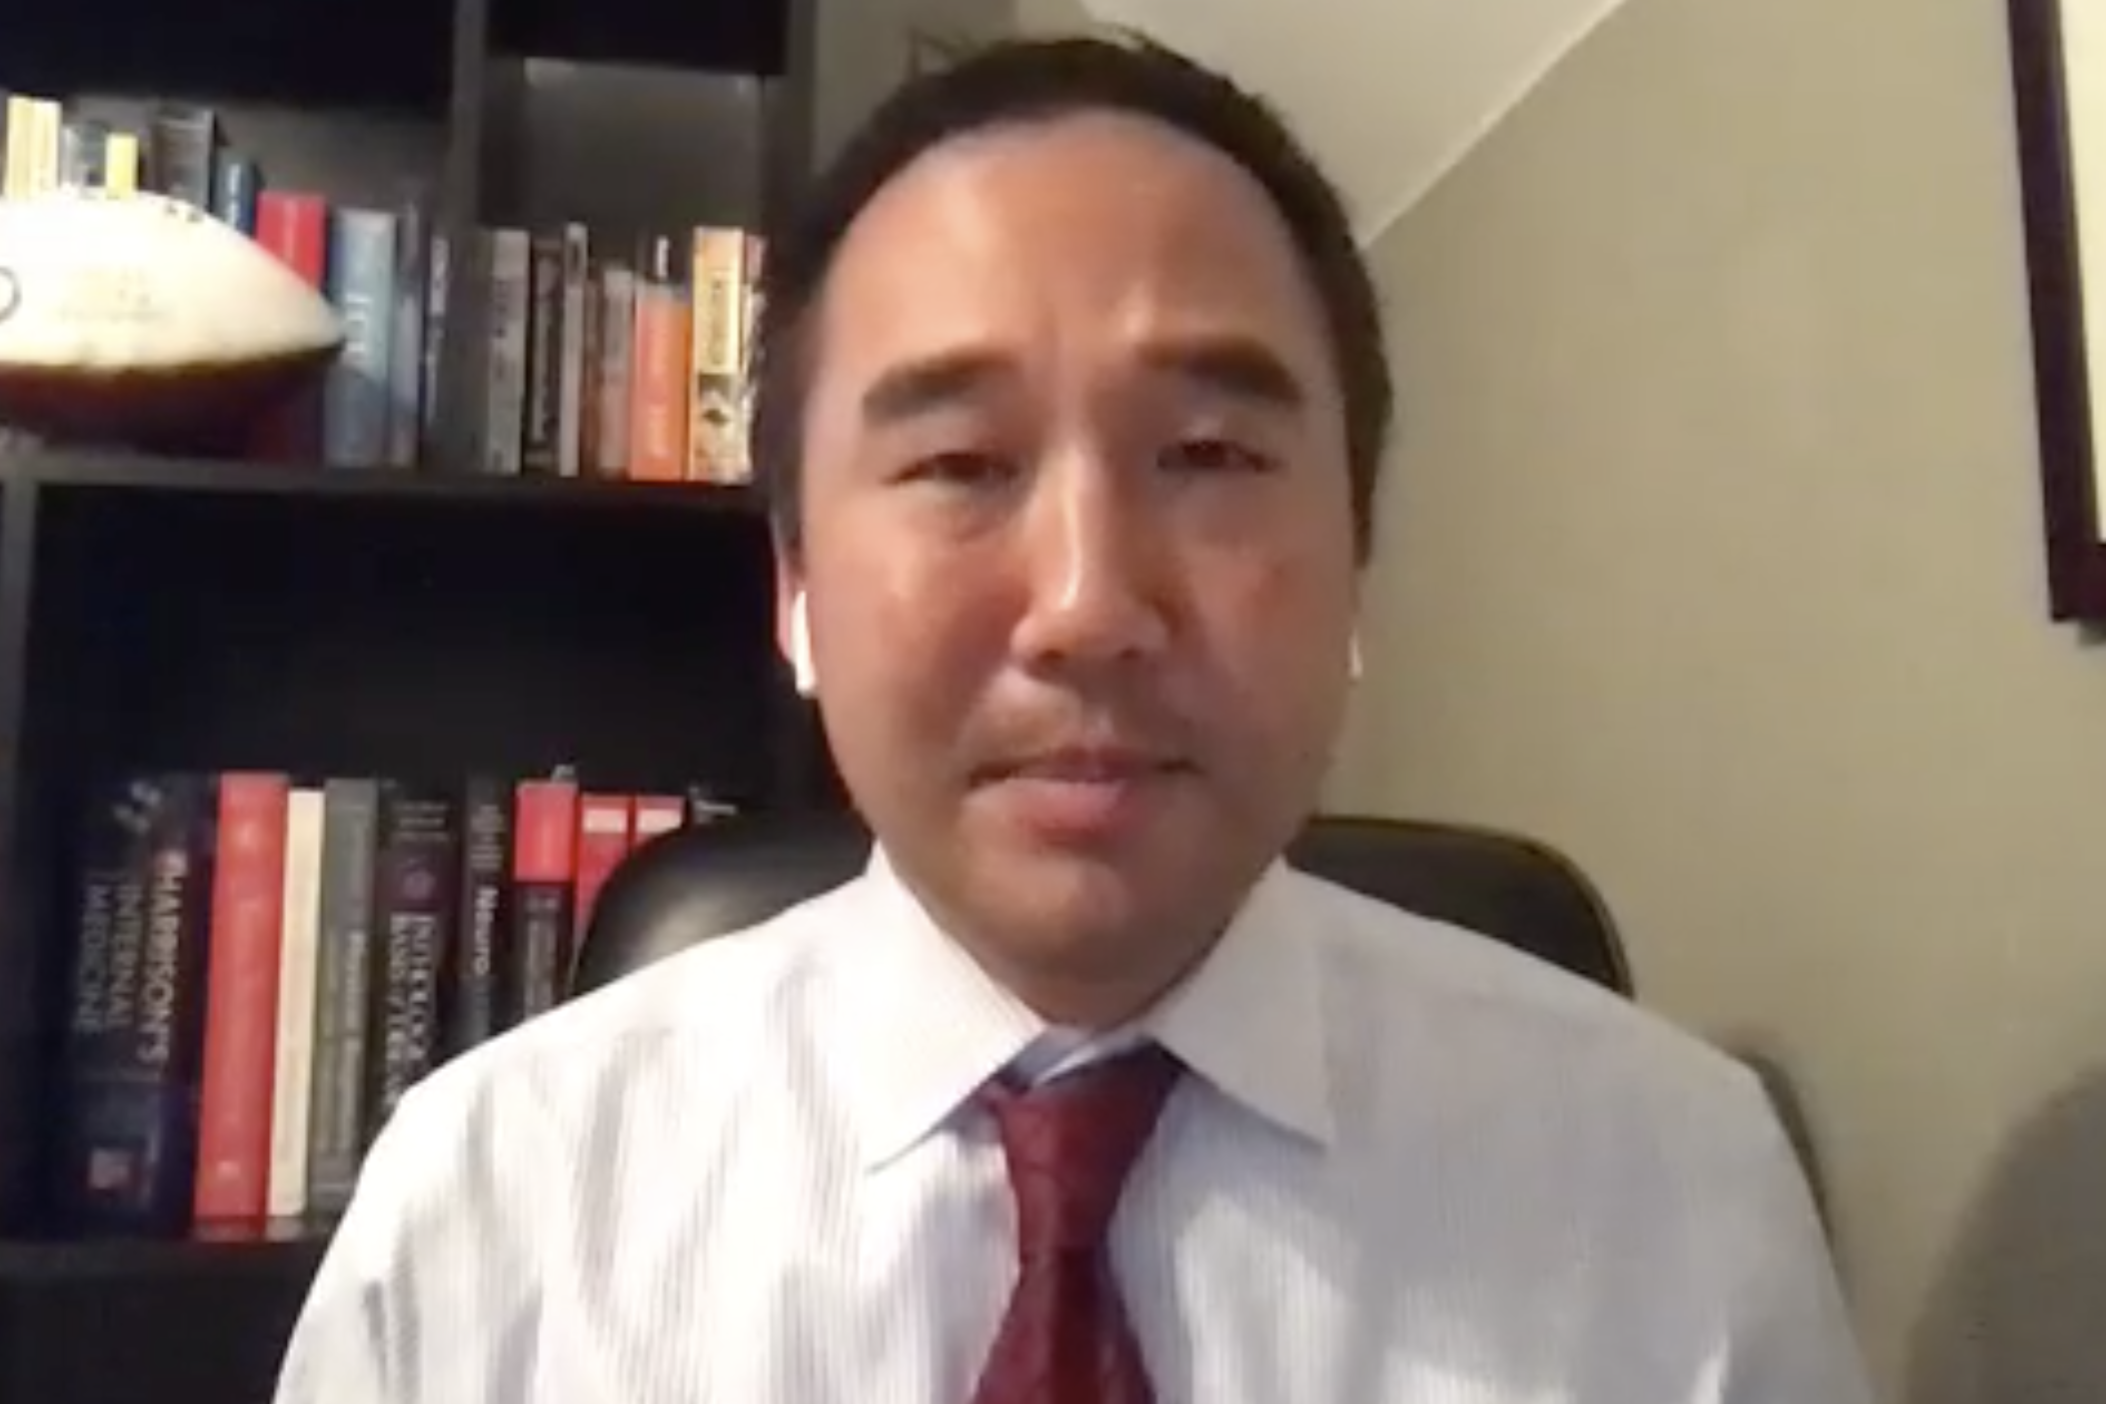 On a video conference Thursday morning, Emory University's Dr. Jonathan Kim discussed the implications of myocarditis, the heart condition linked to professional and college athletes with COVID-19.